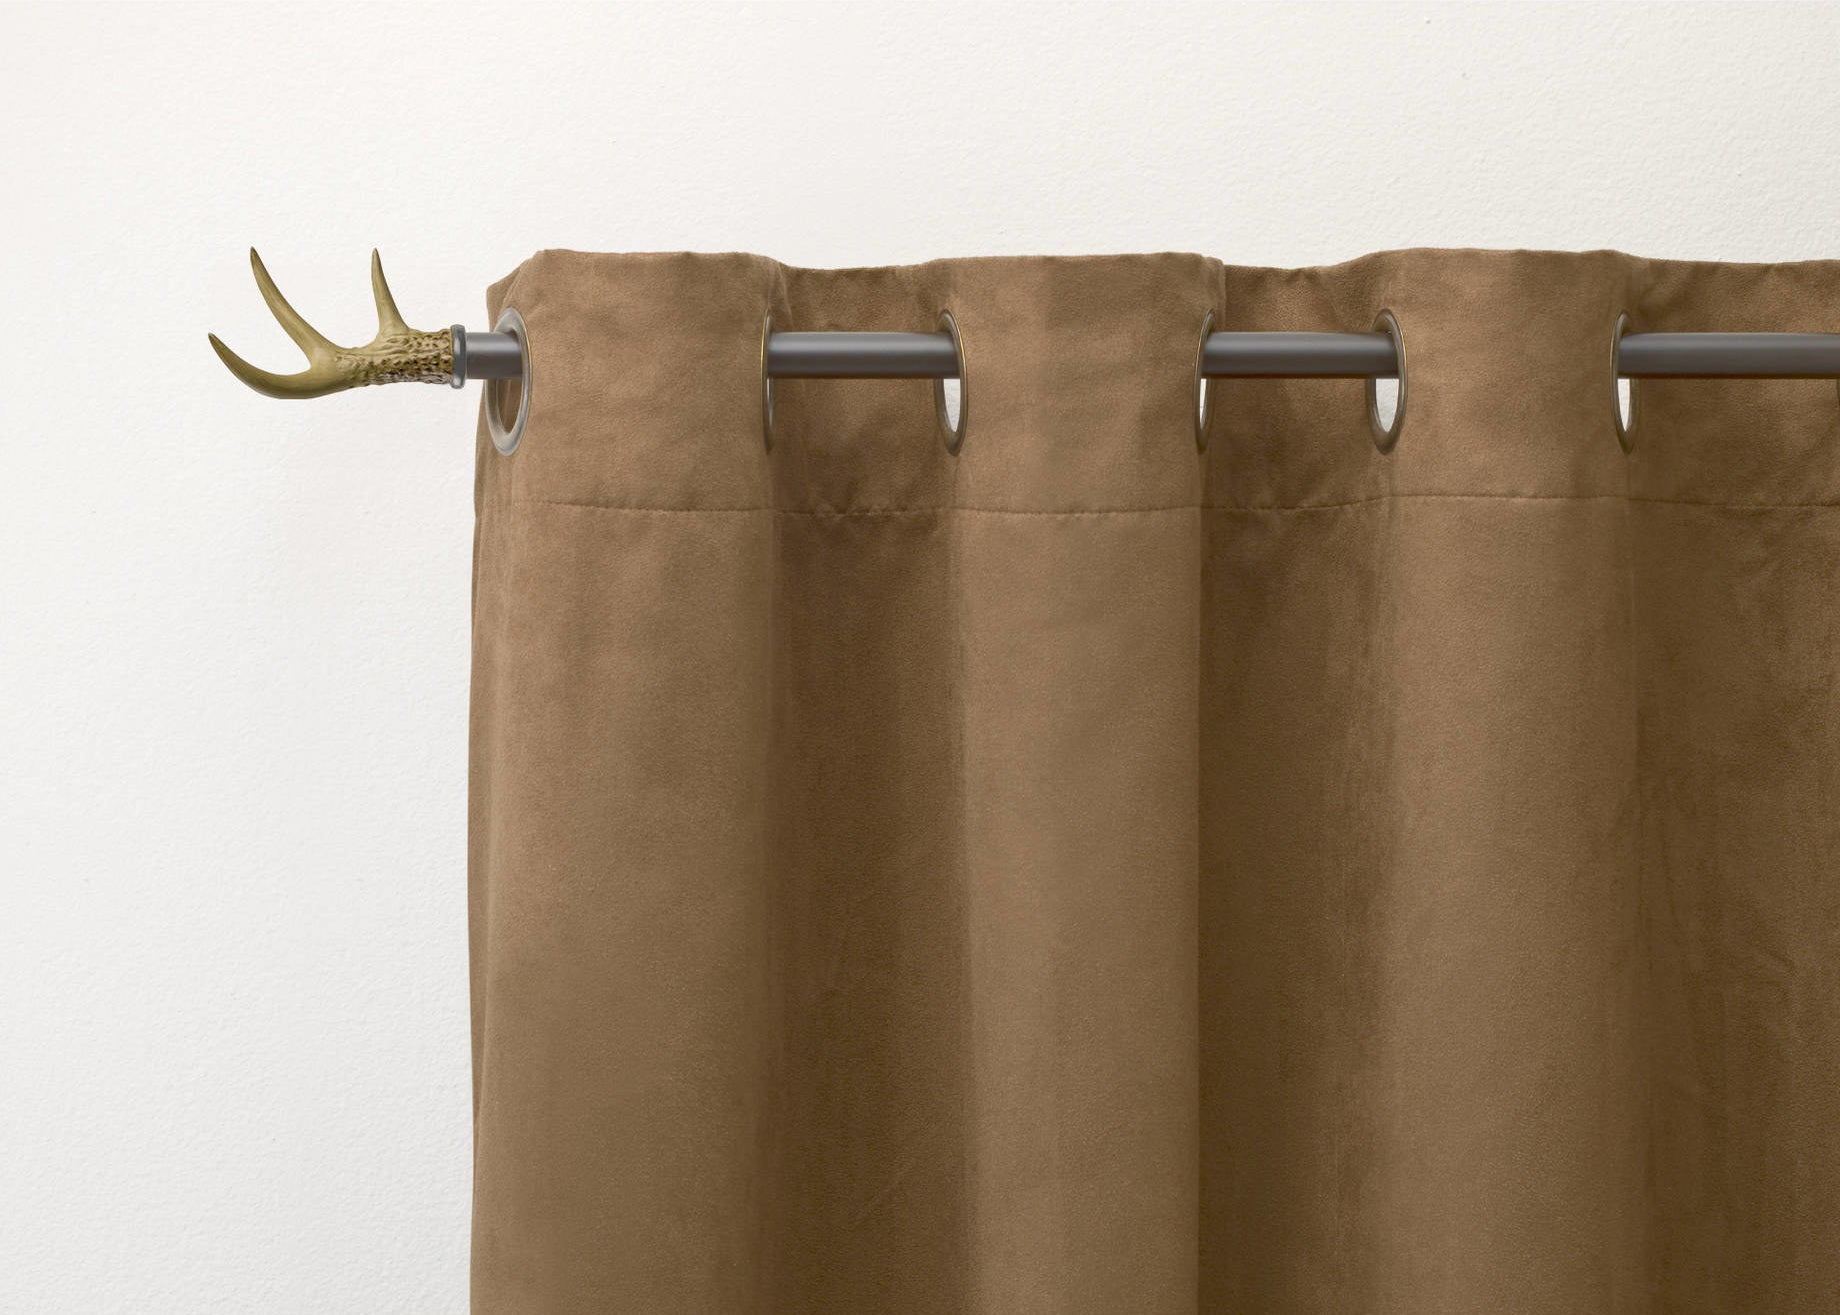 The curtain rod with a golden finish and brown curtains hanging from it